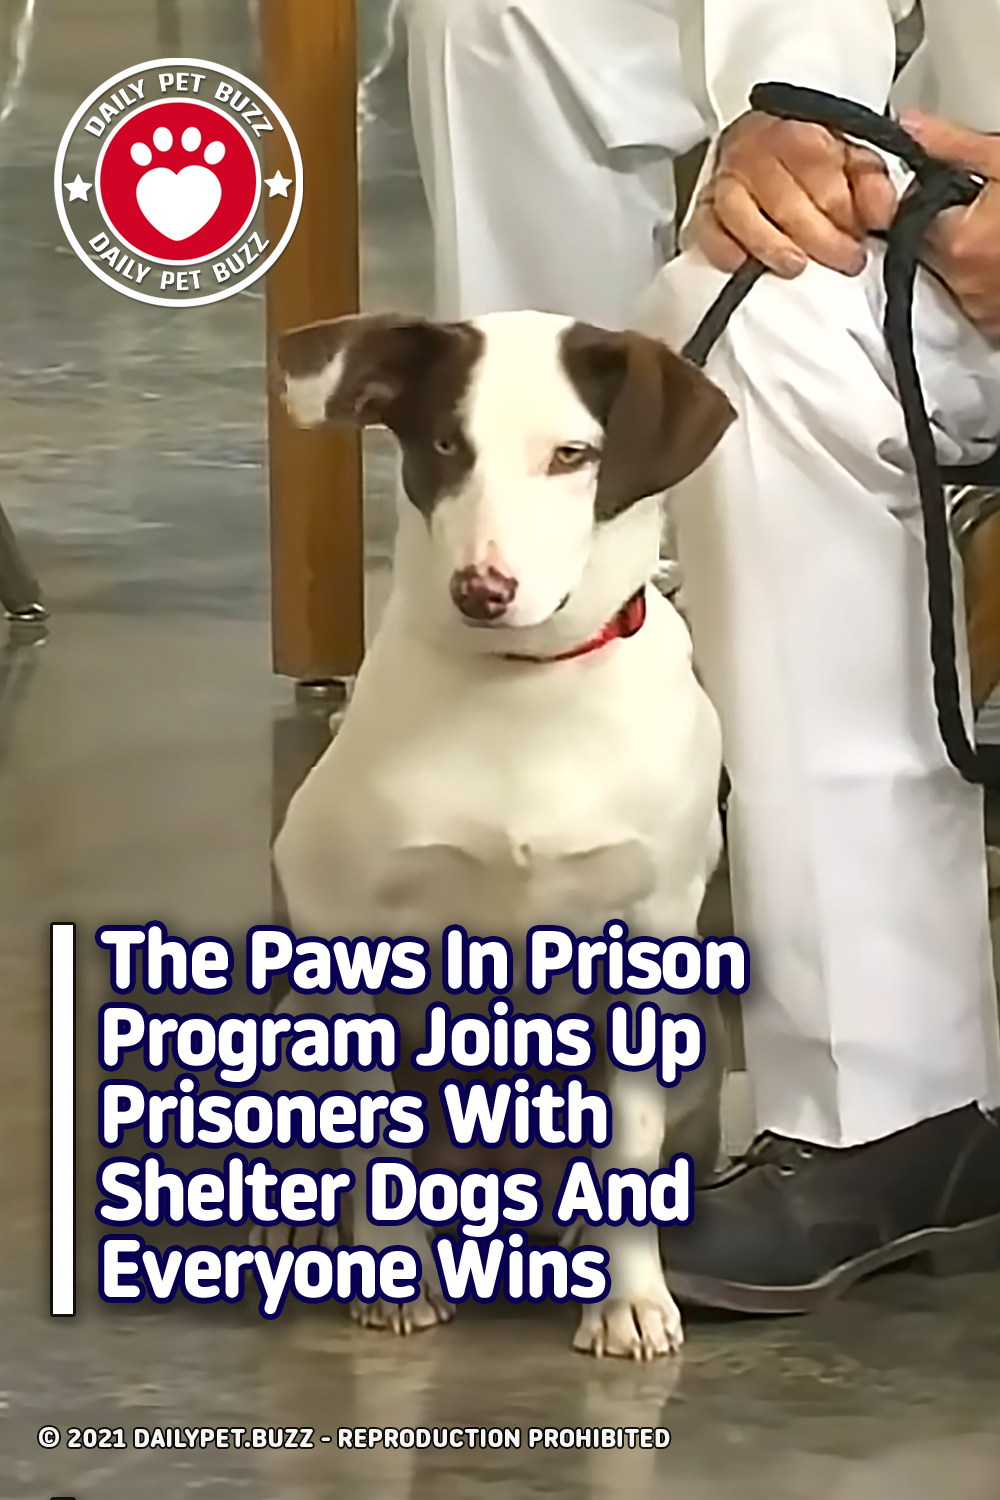 The Paws In Prison Program Joins Up Prisoners With Shelter Dogs And Everyone Wins